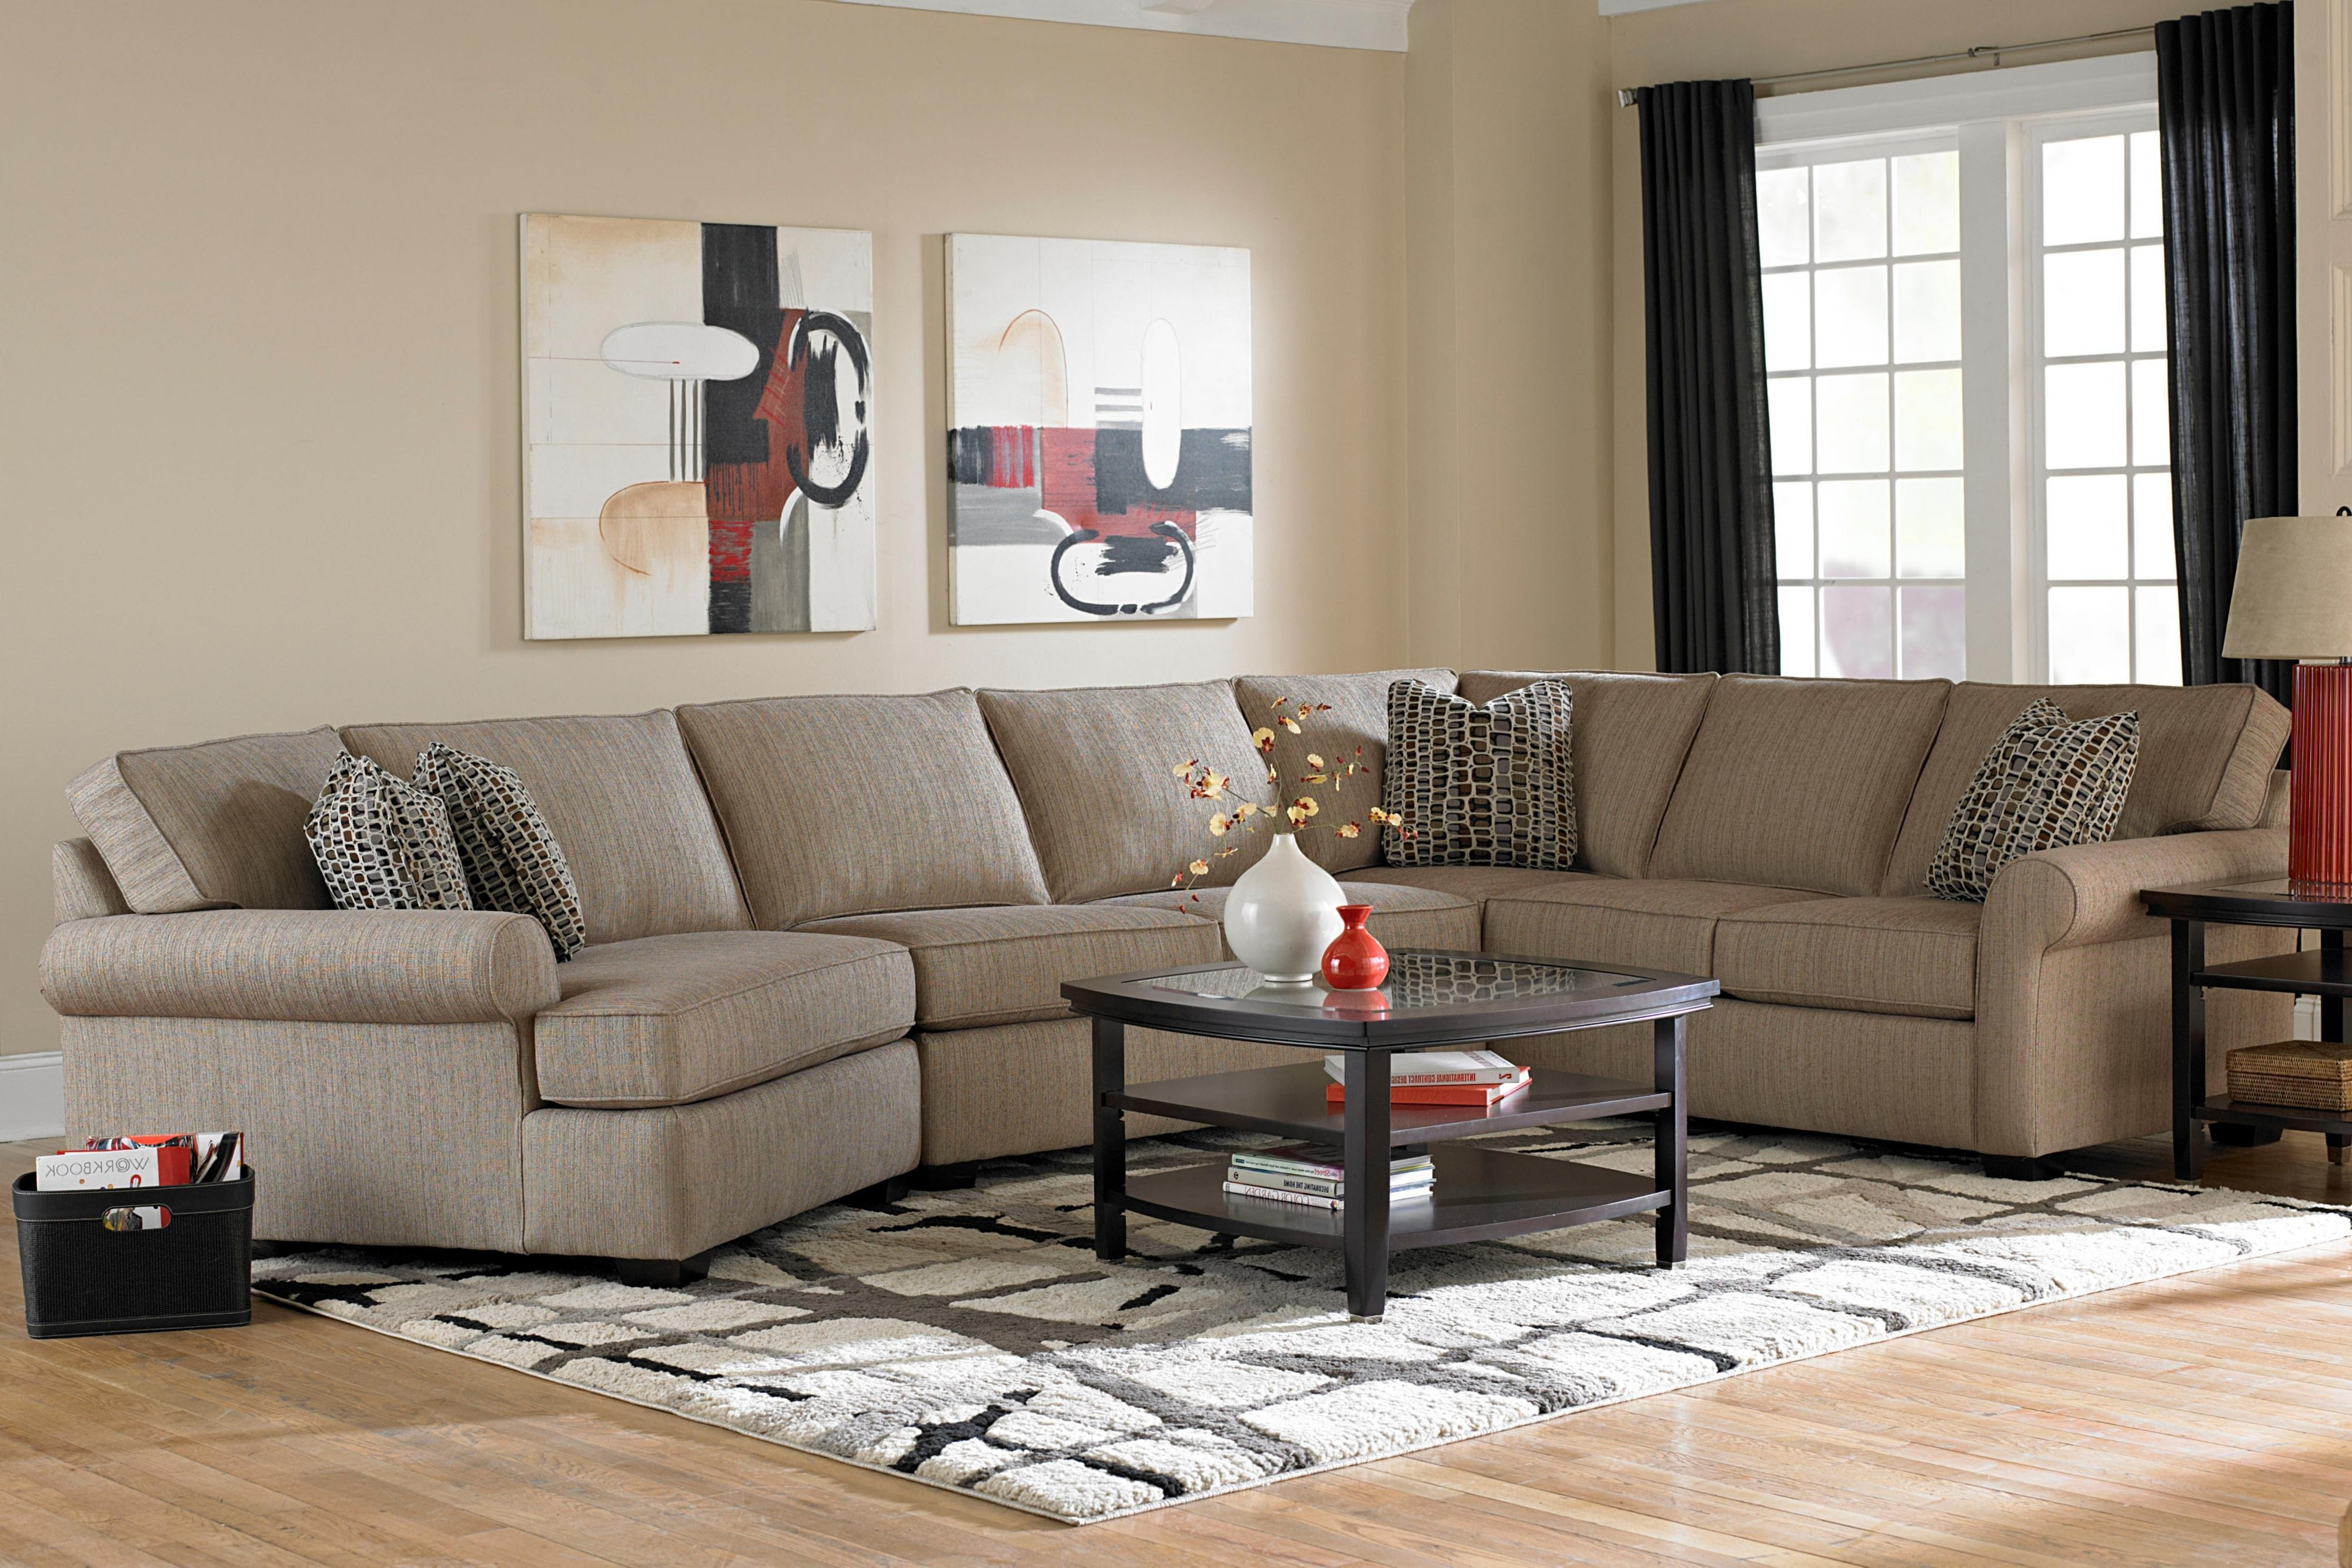 2019 Broyhill Furniture Ethan Transitional Sectional Sofa With Right Within Grand Rapids Mi Sectional Sofas (View 12 of 20)